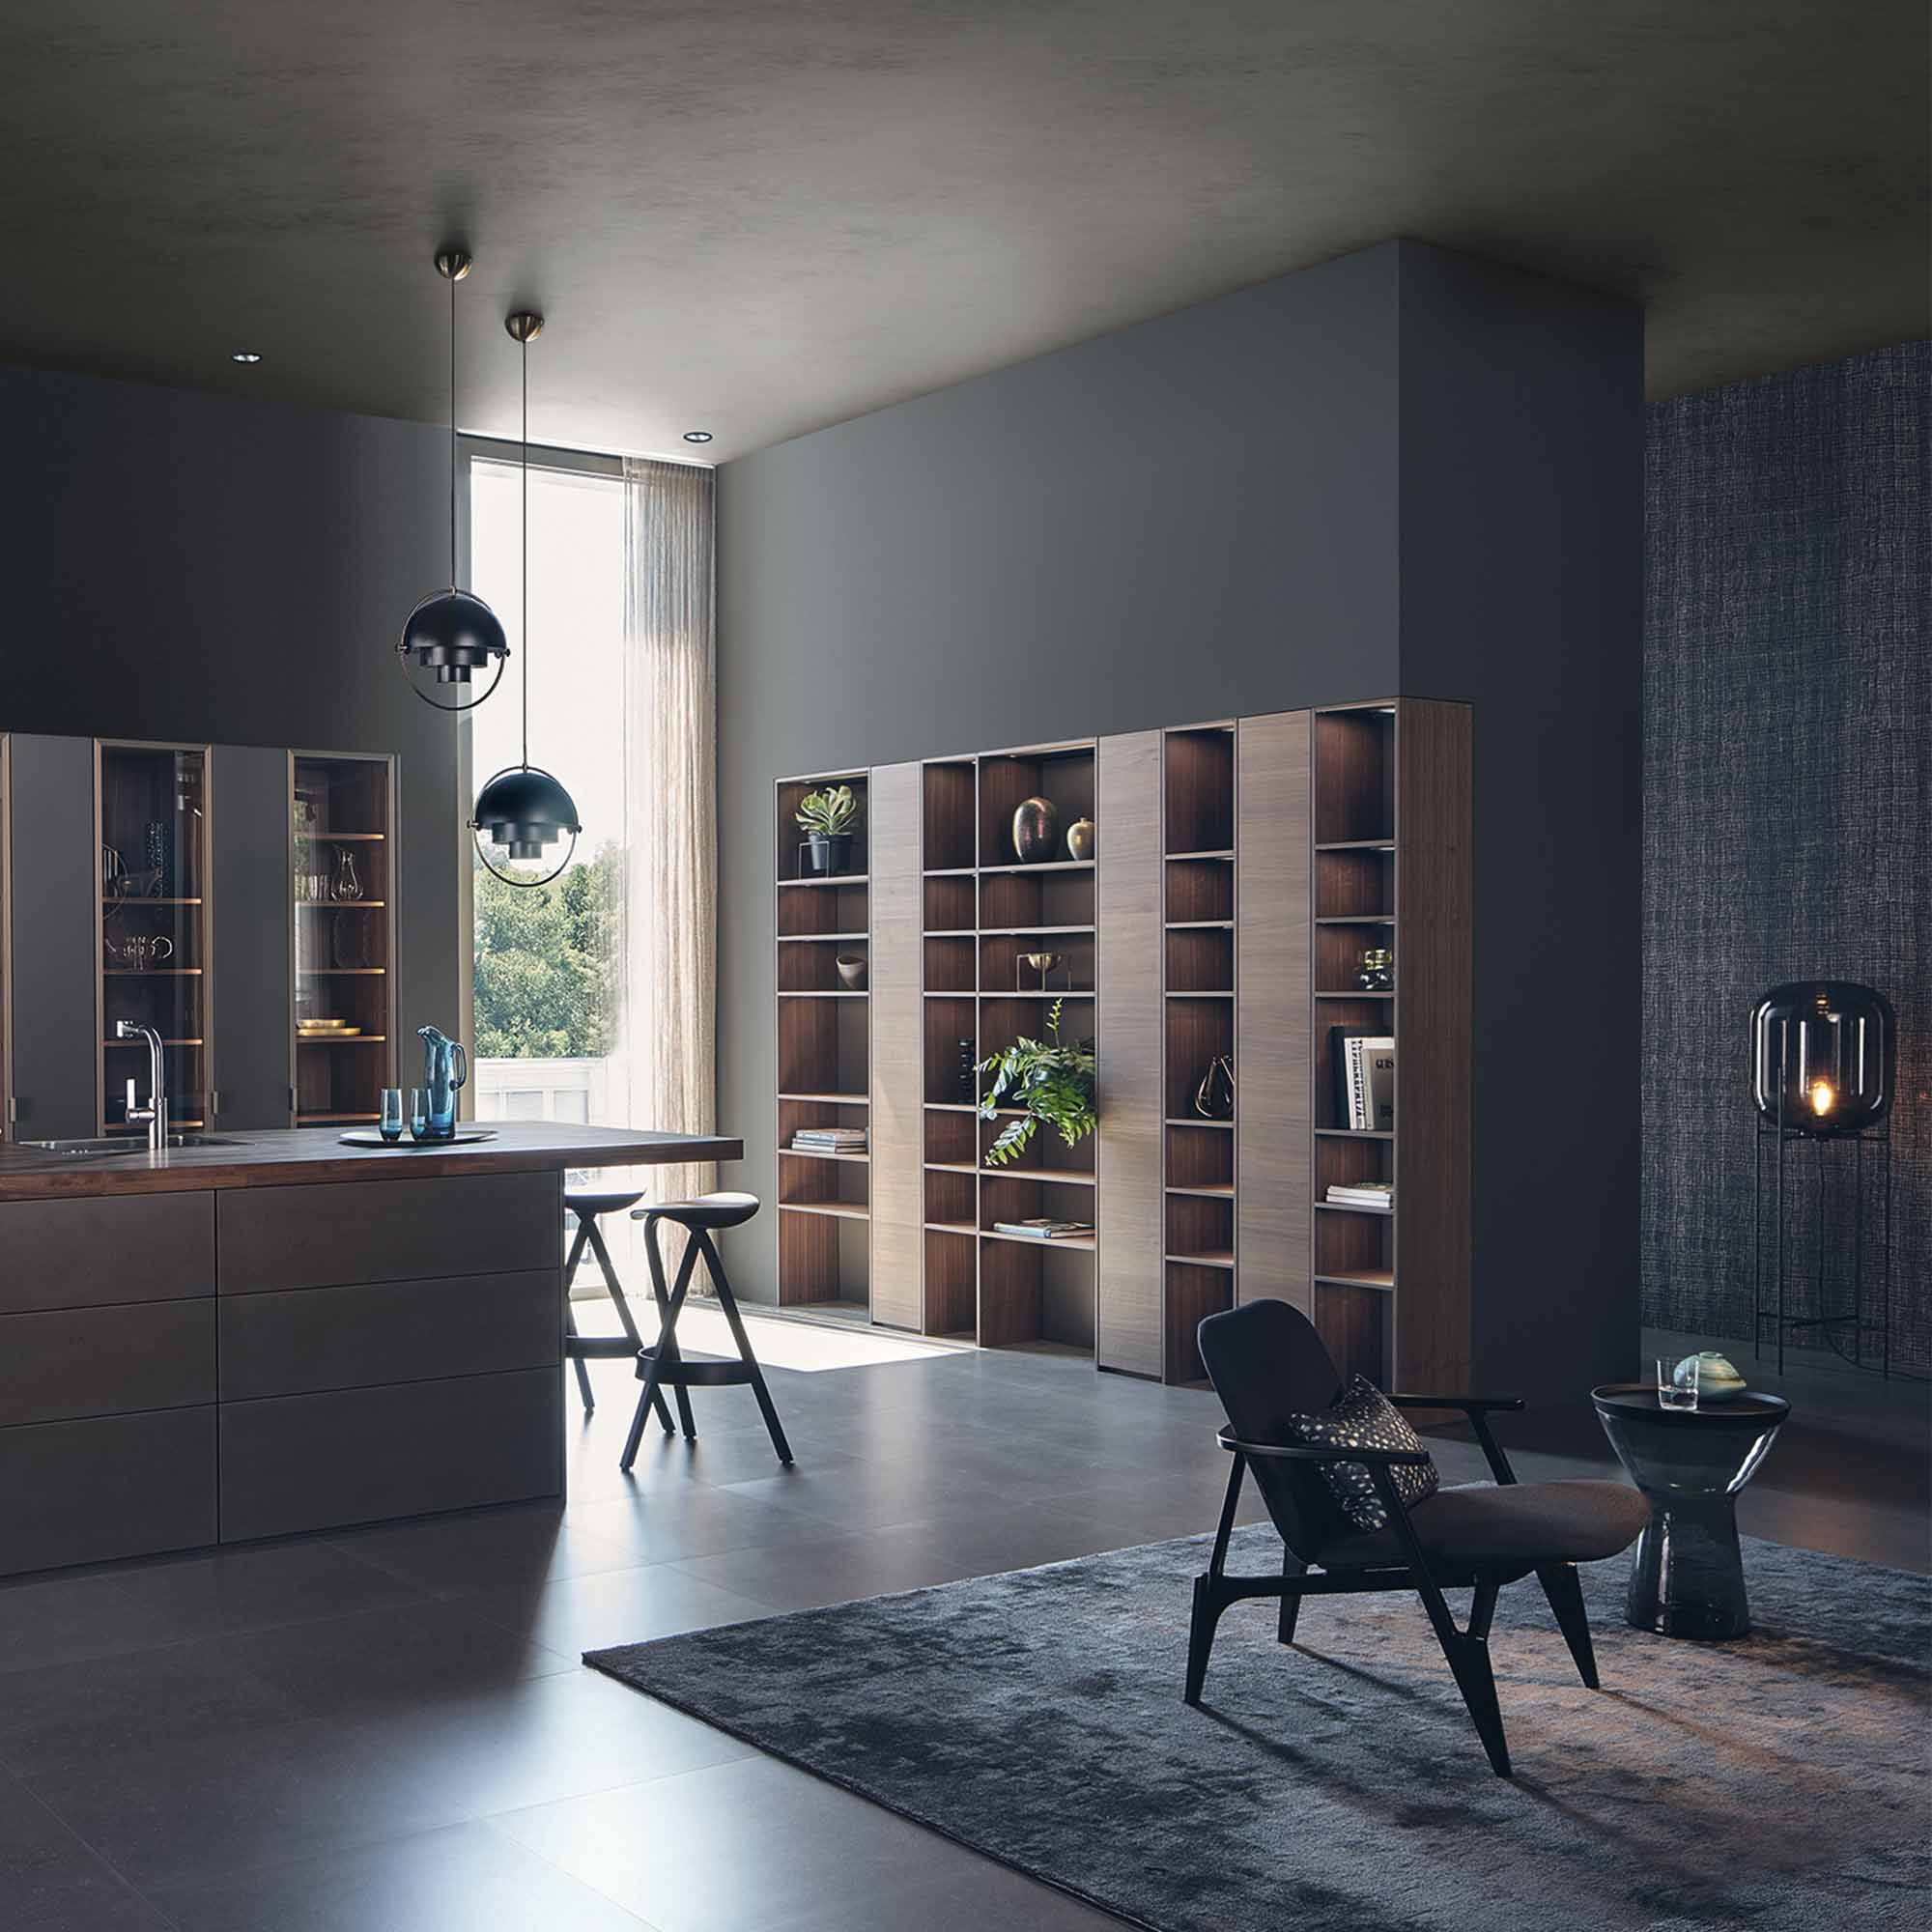 Designer kitchen and living area by Hubble